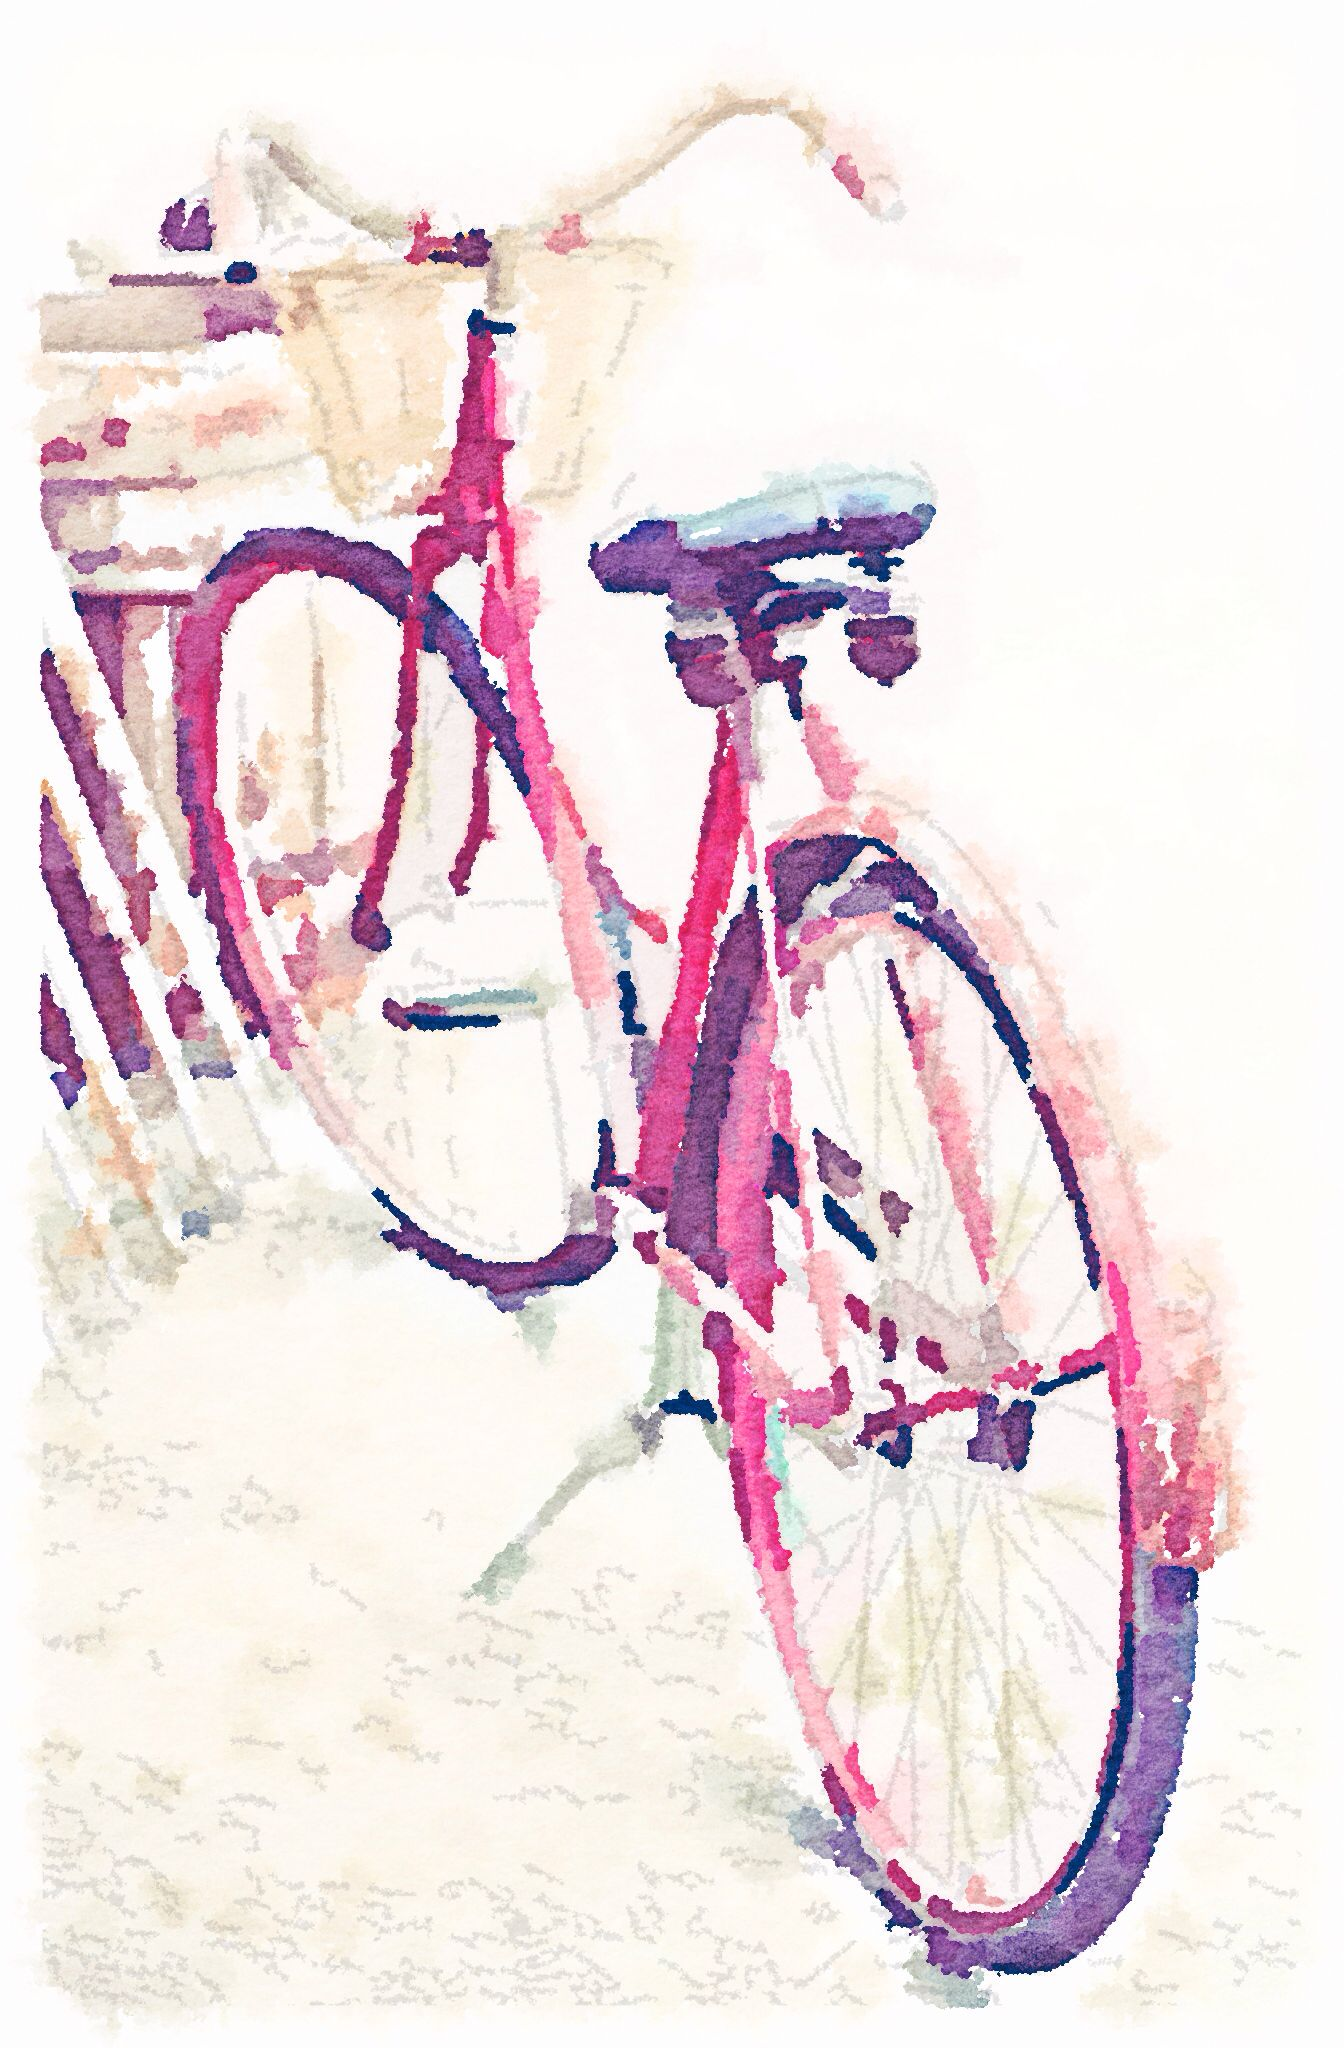 Bicycle waterlogue in 2019 | Bicycle painting, Bicycle ...